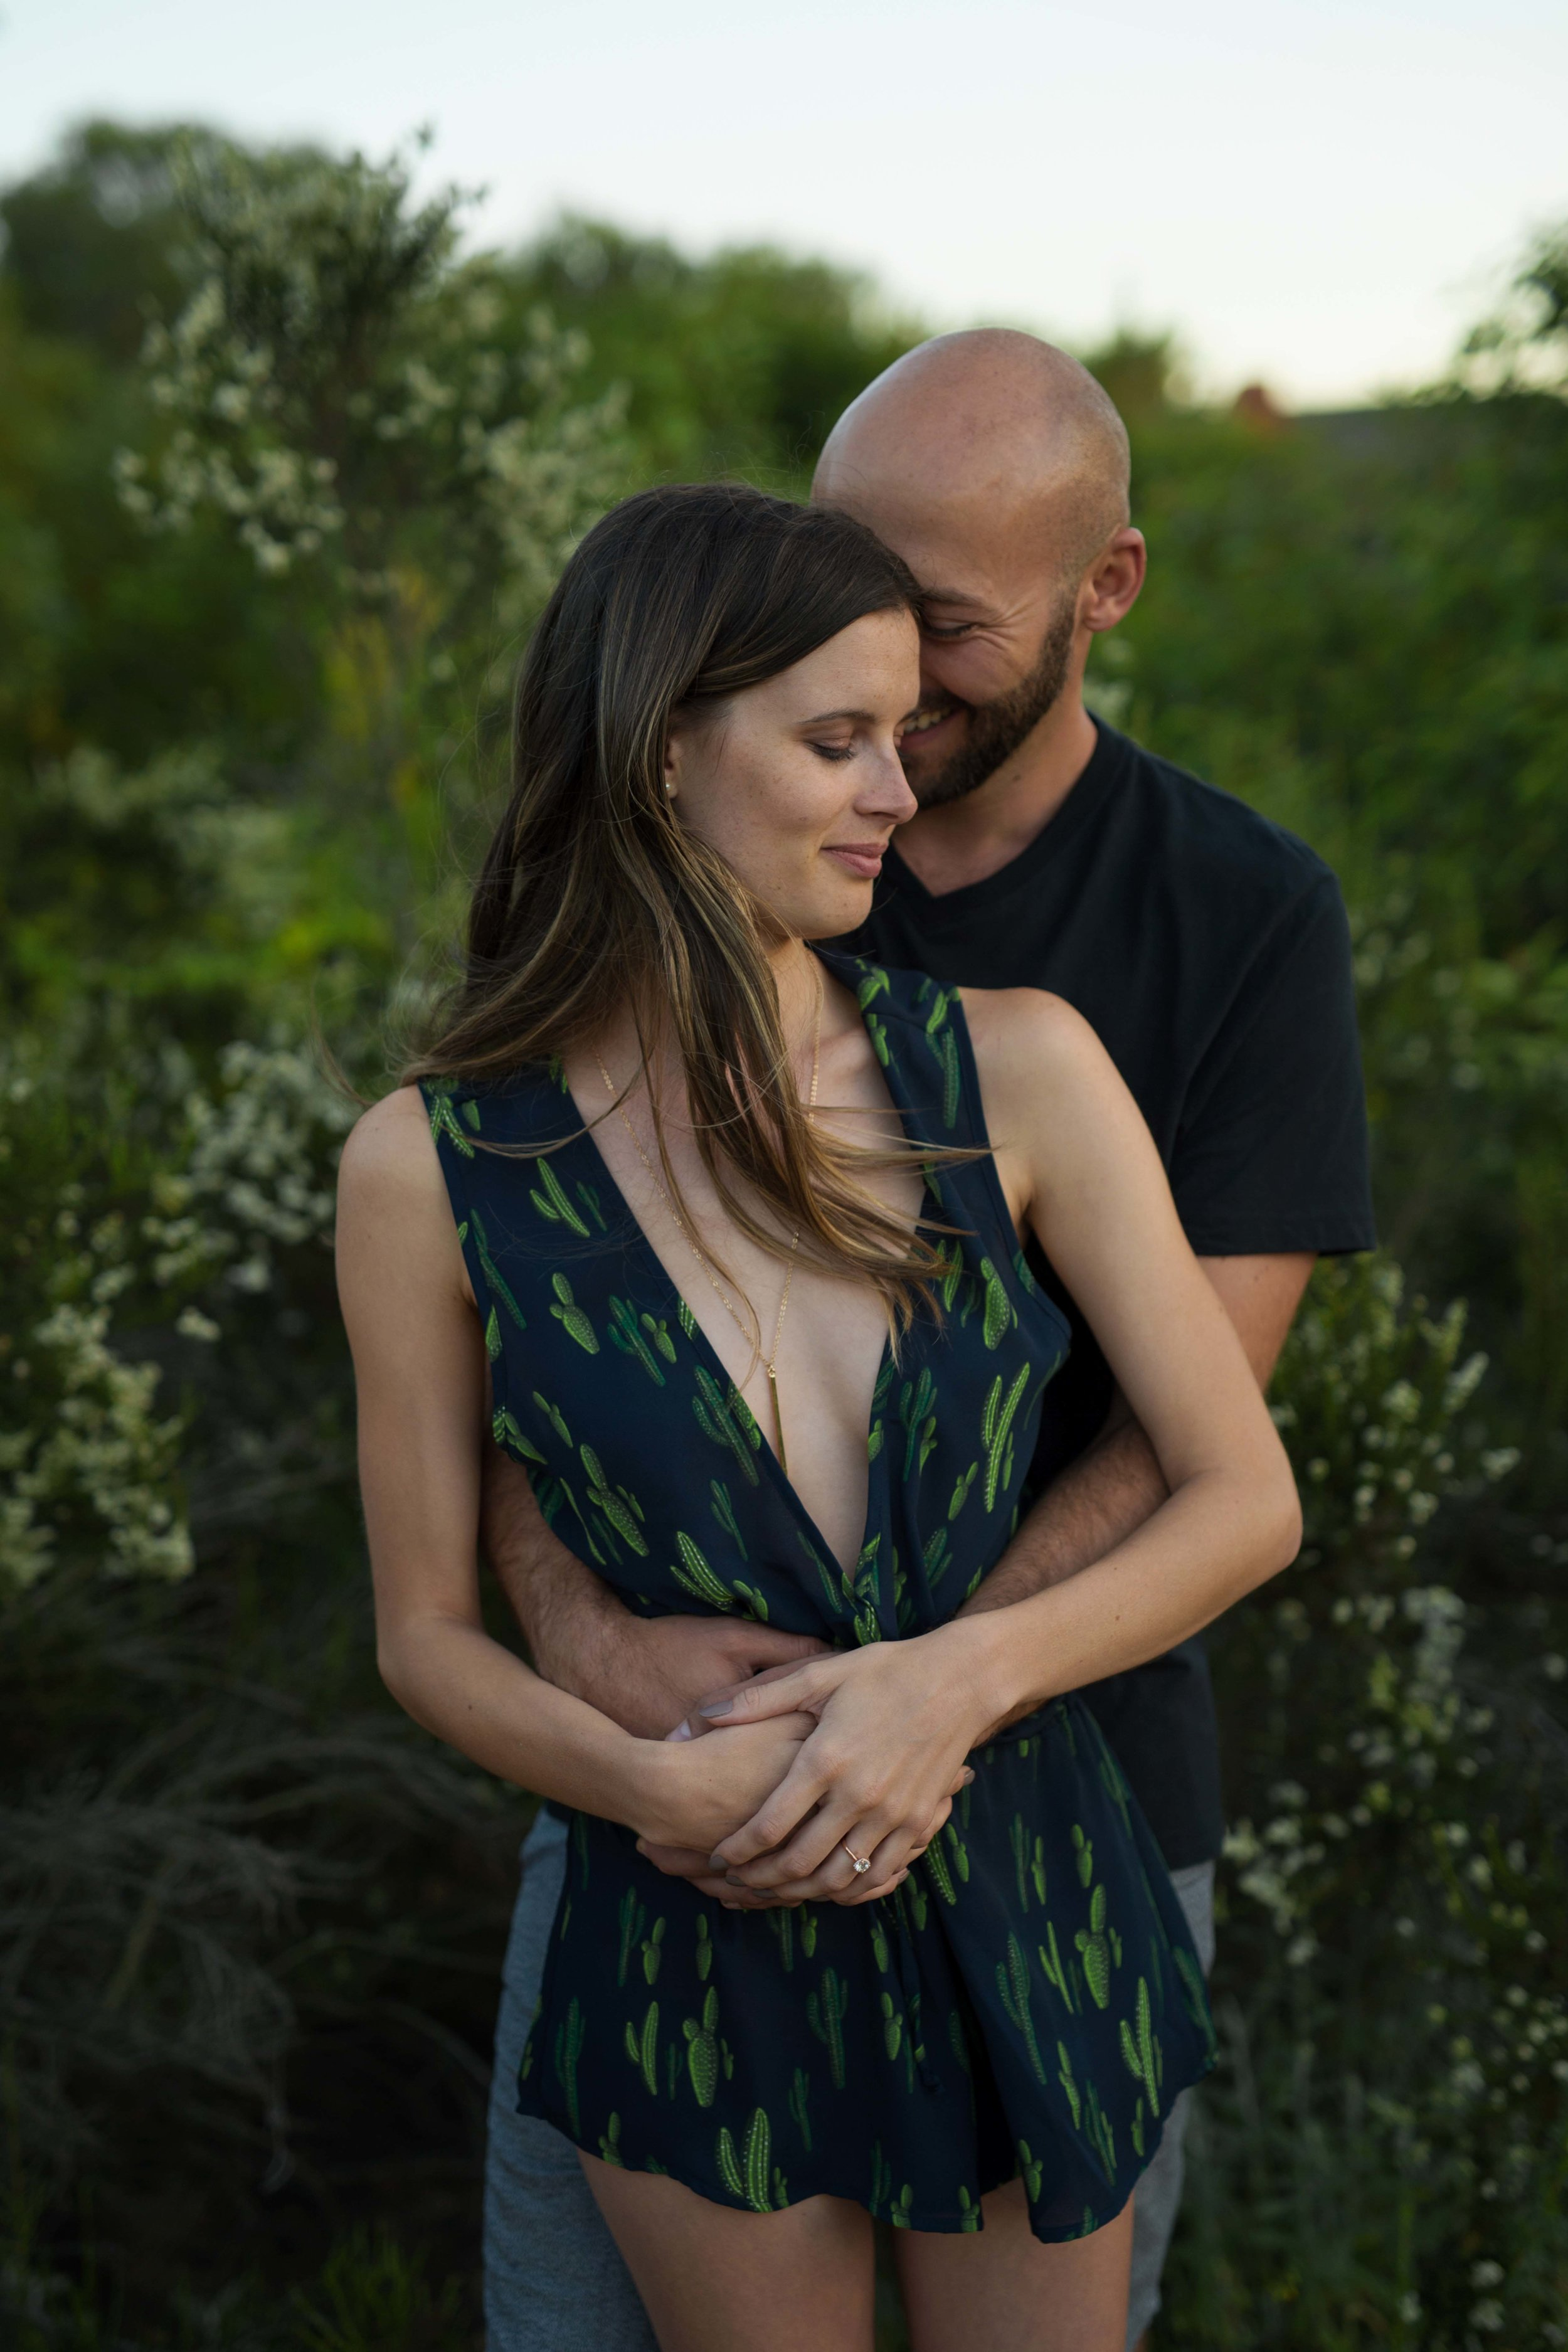 Christy-D-Swanberg-Photography-Calgary-Engagements-southern-california-27.jpg